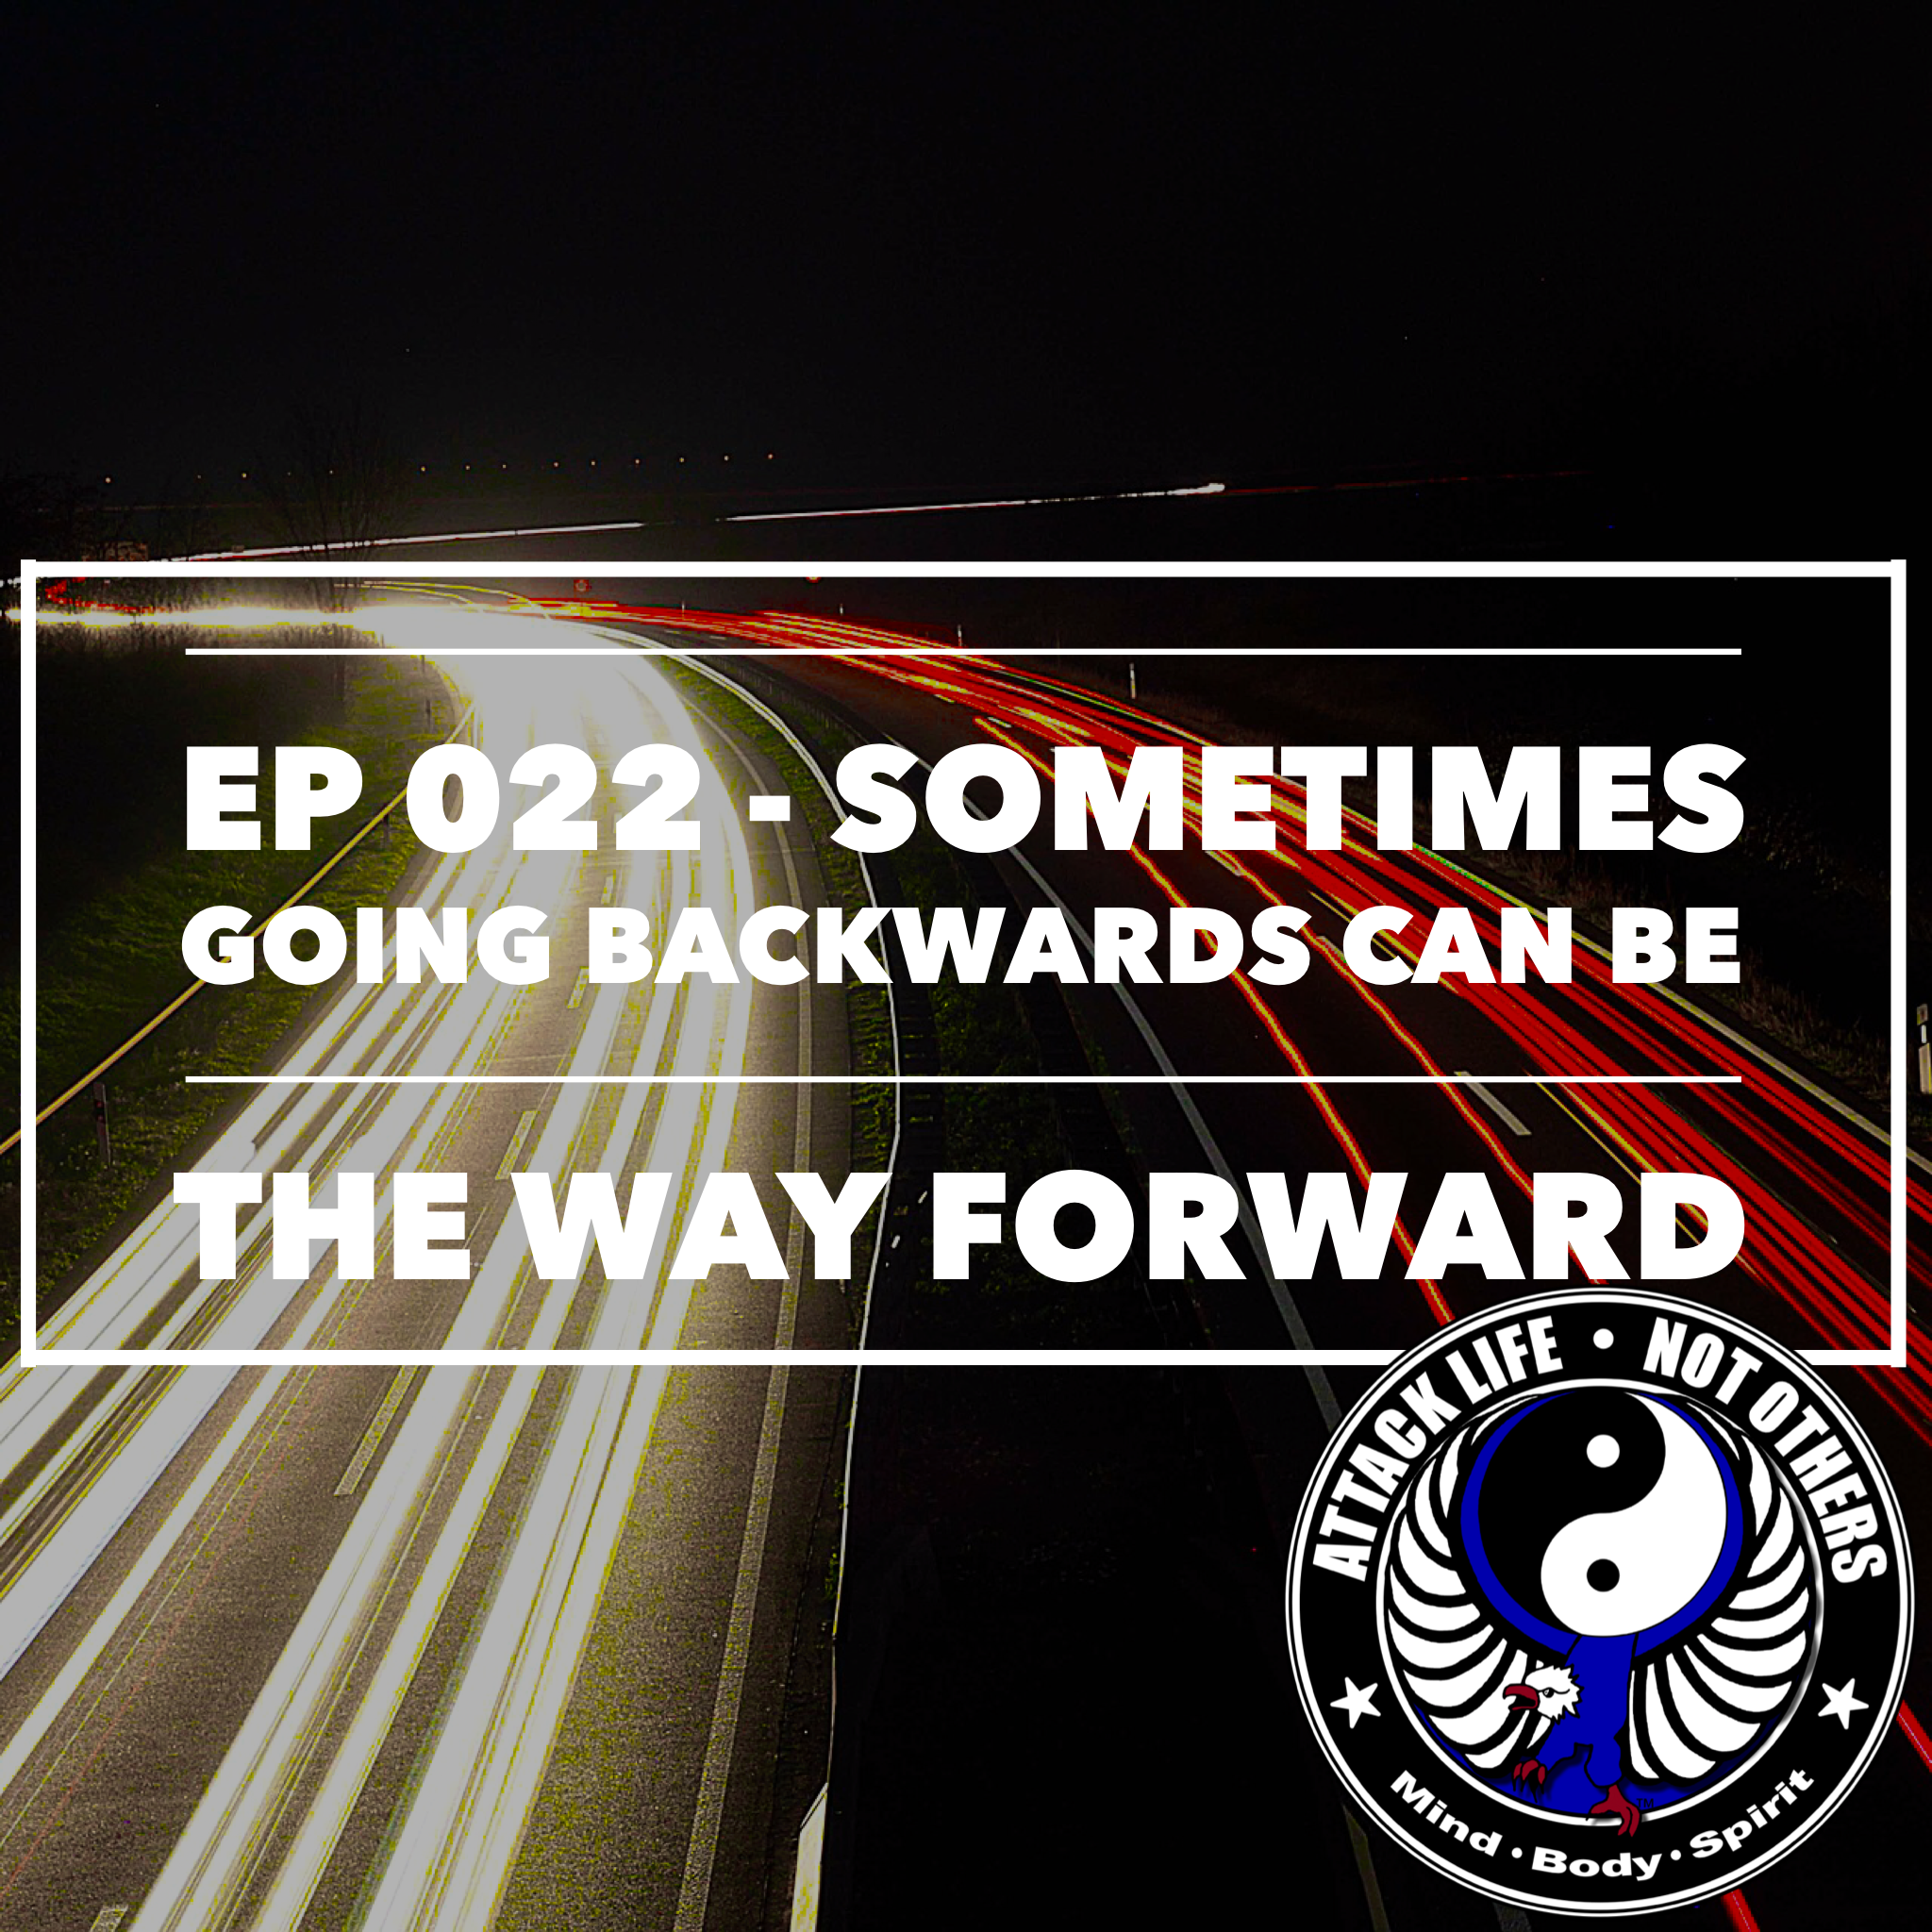 Ep 022 - Sometimes Going Backwards Can Be the Way Forward